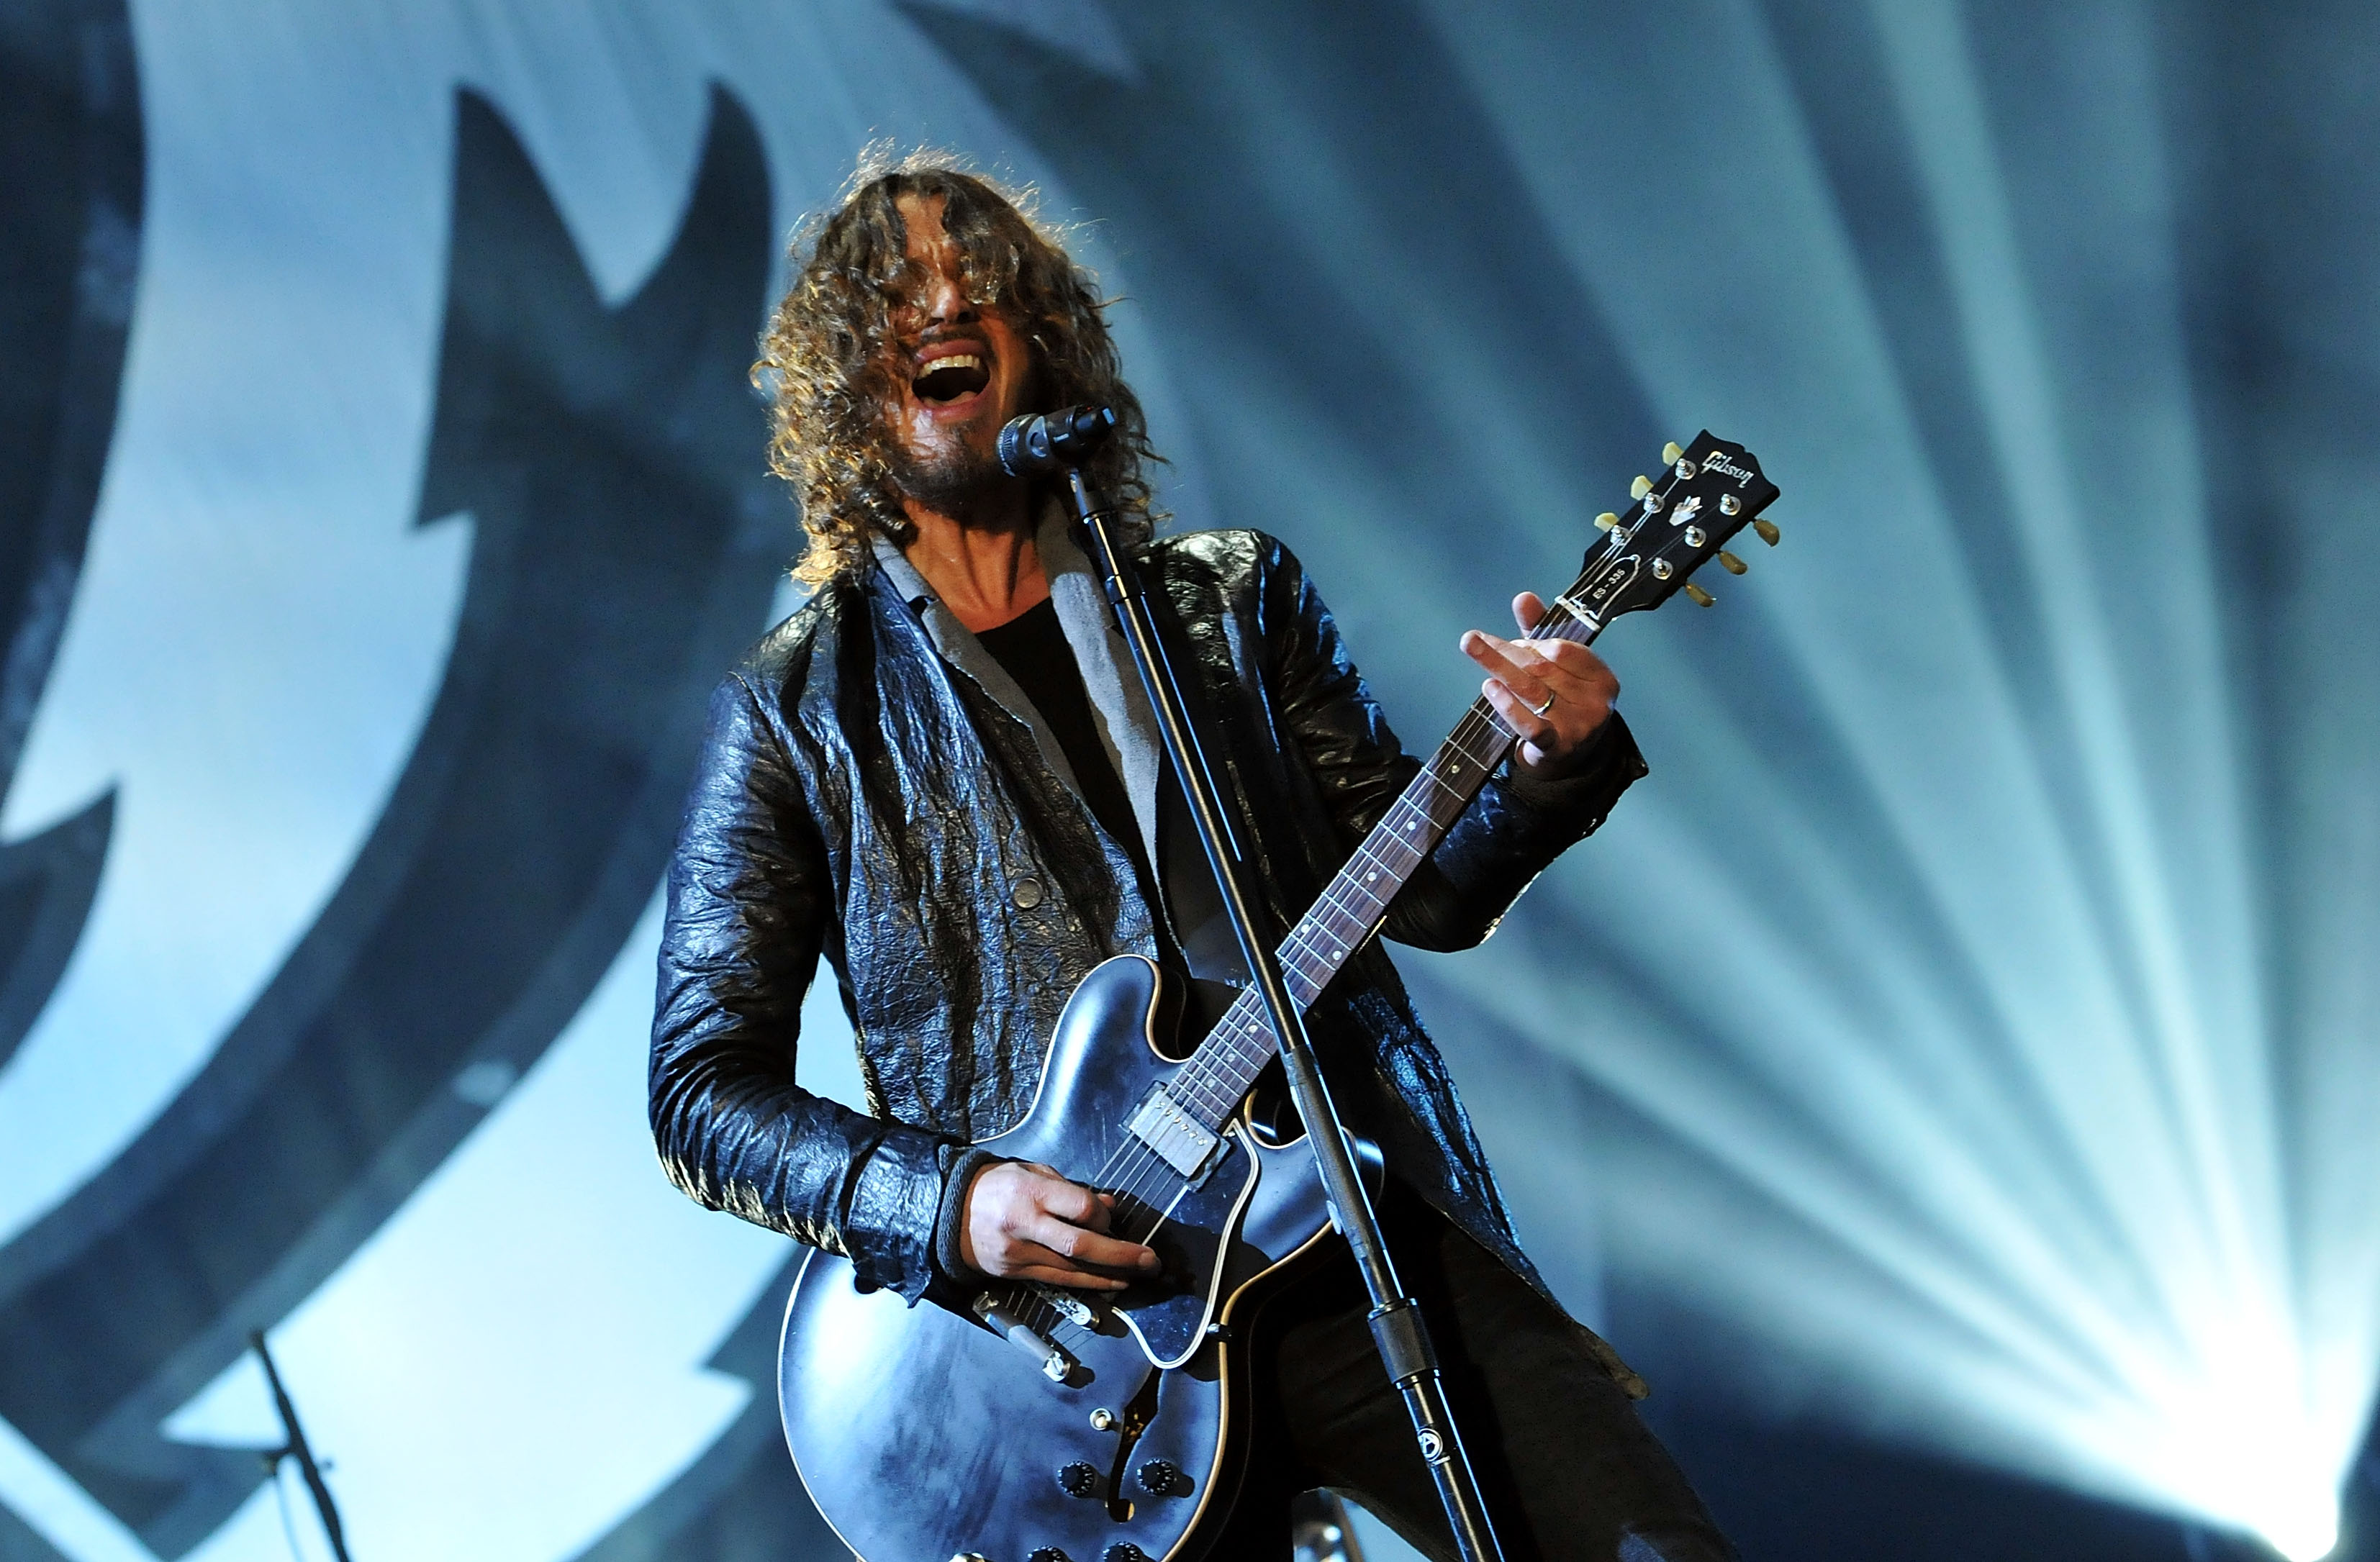 chris-cornell-of-soundgarden.jpg